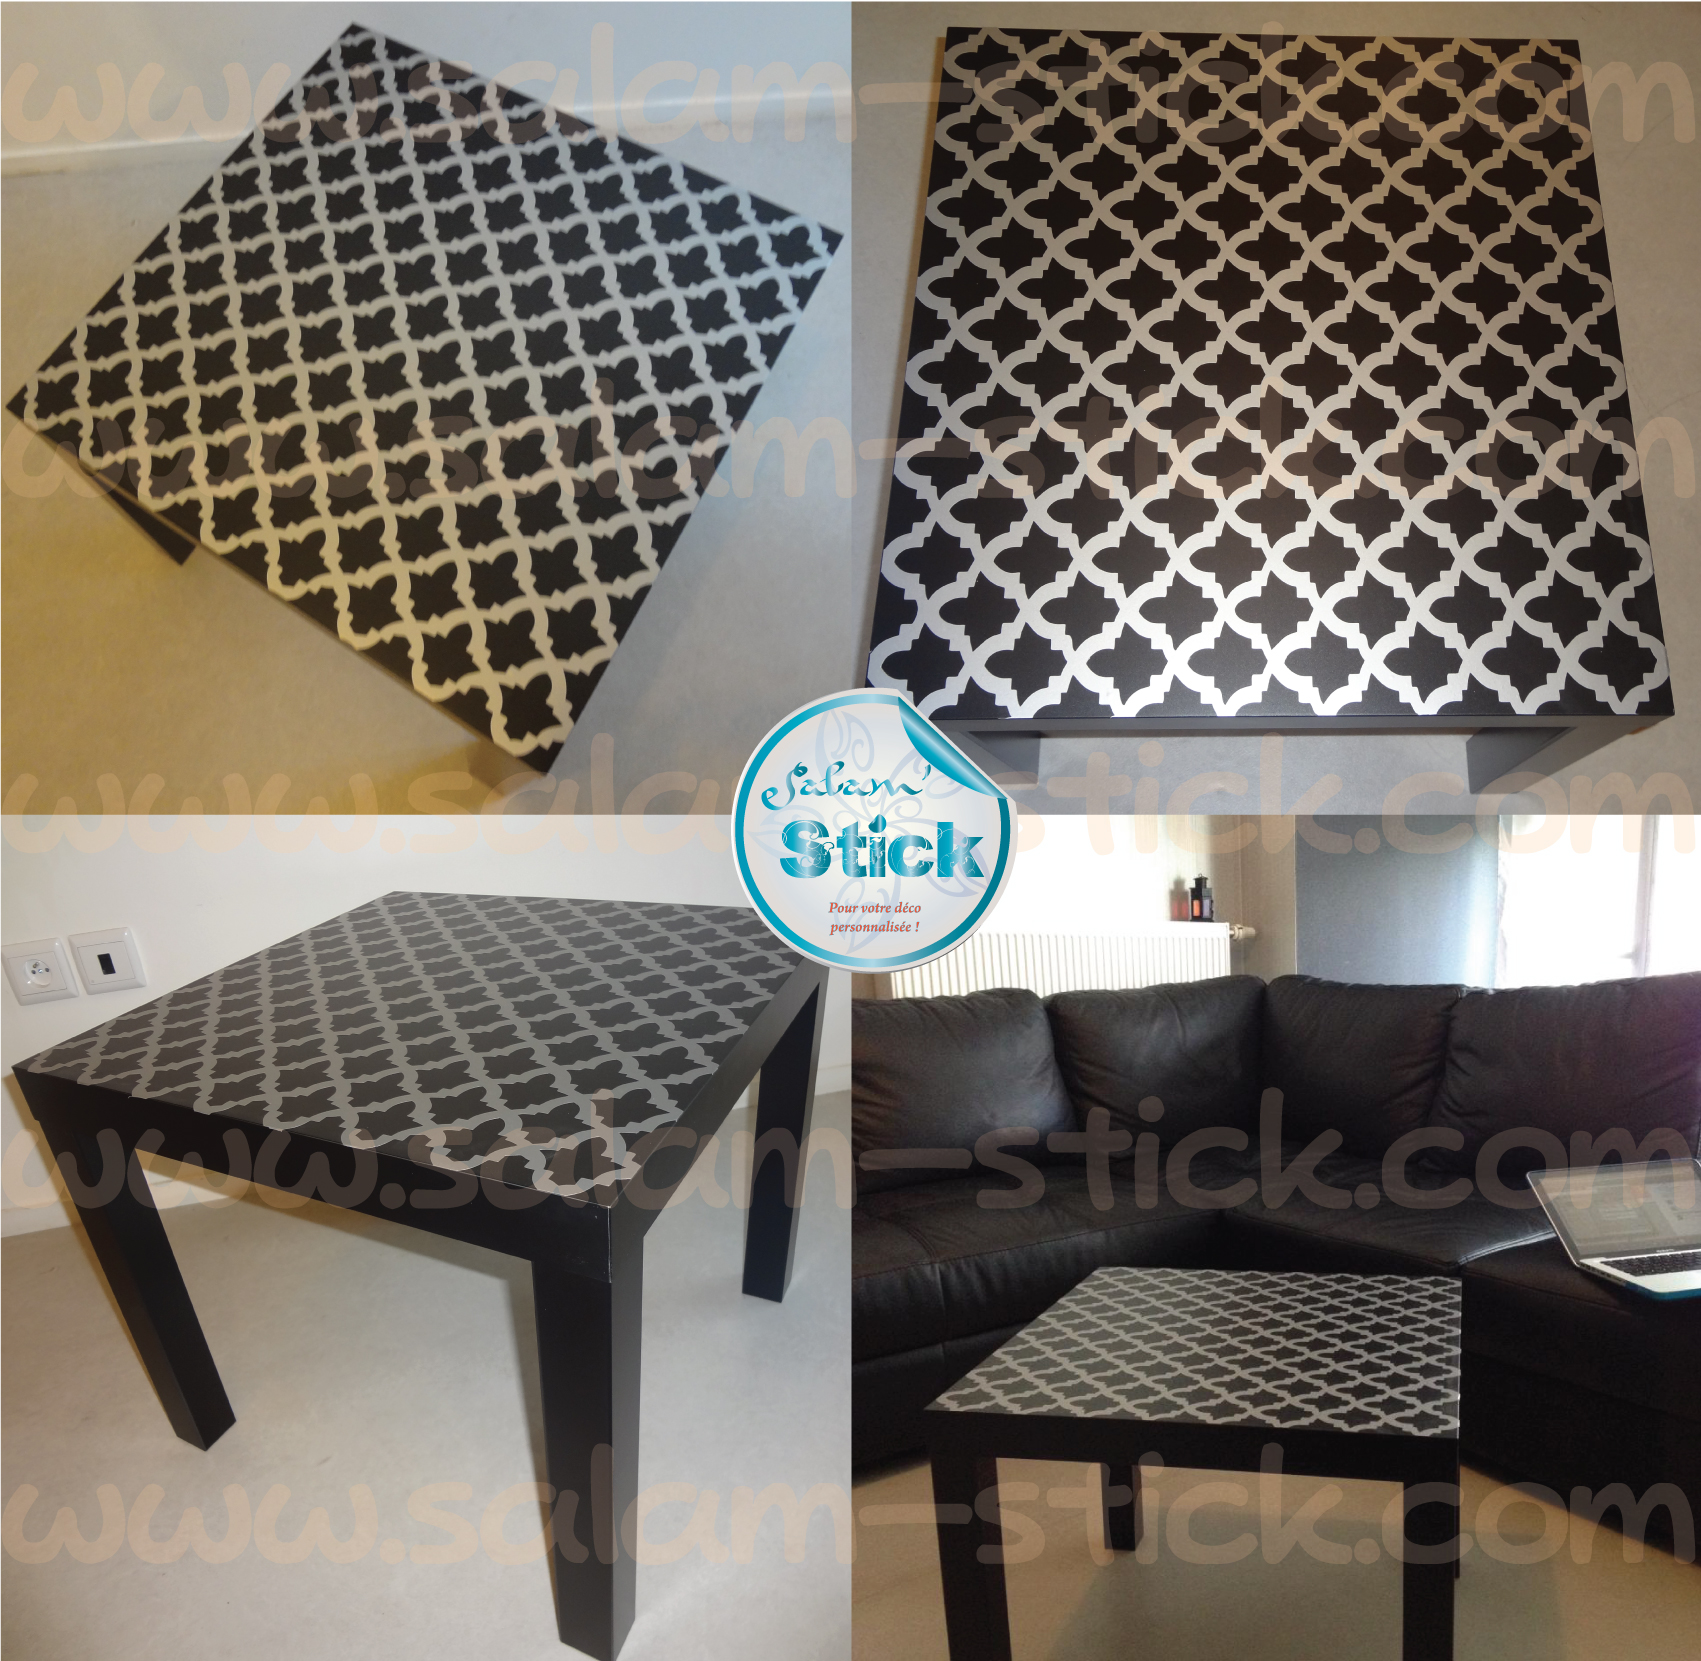 Comment customiser une table ikea - Personnaliser table basse ikea ...